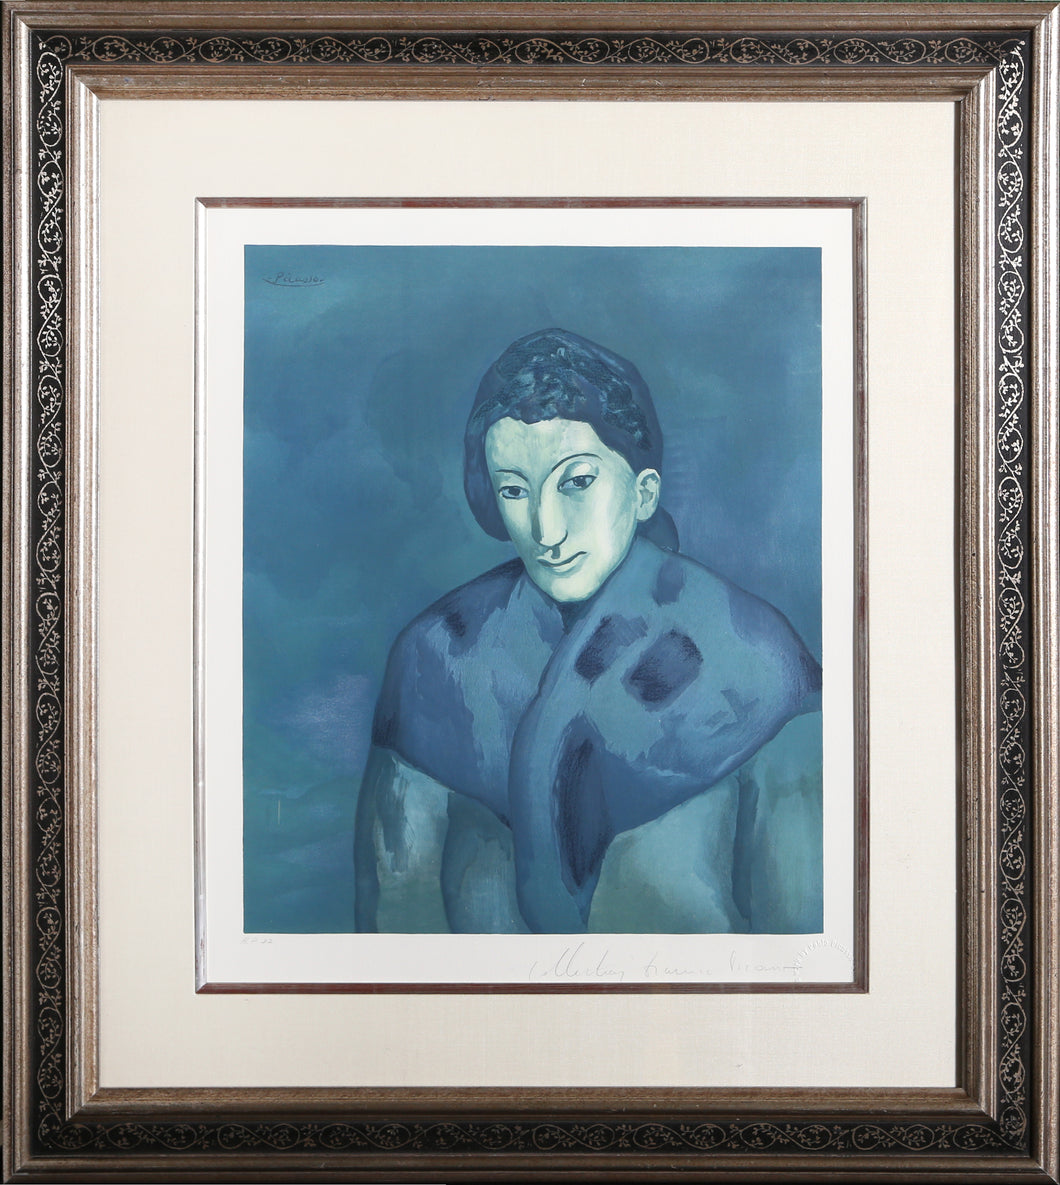 Pablo Picasso, Buste de Femme, 32-5, Lithograph on Arches, signed in pencil